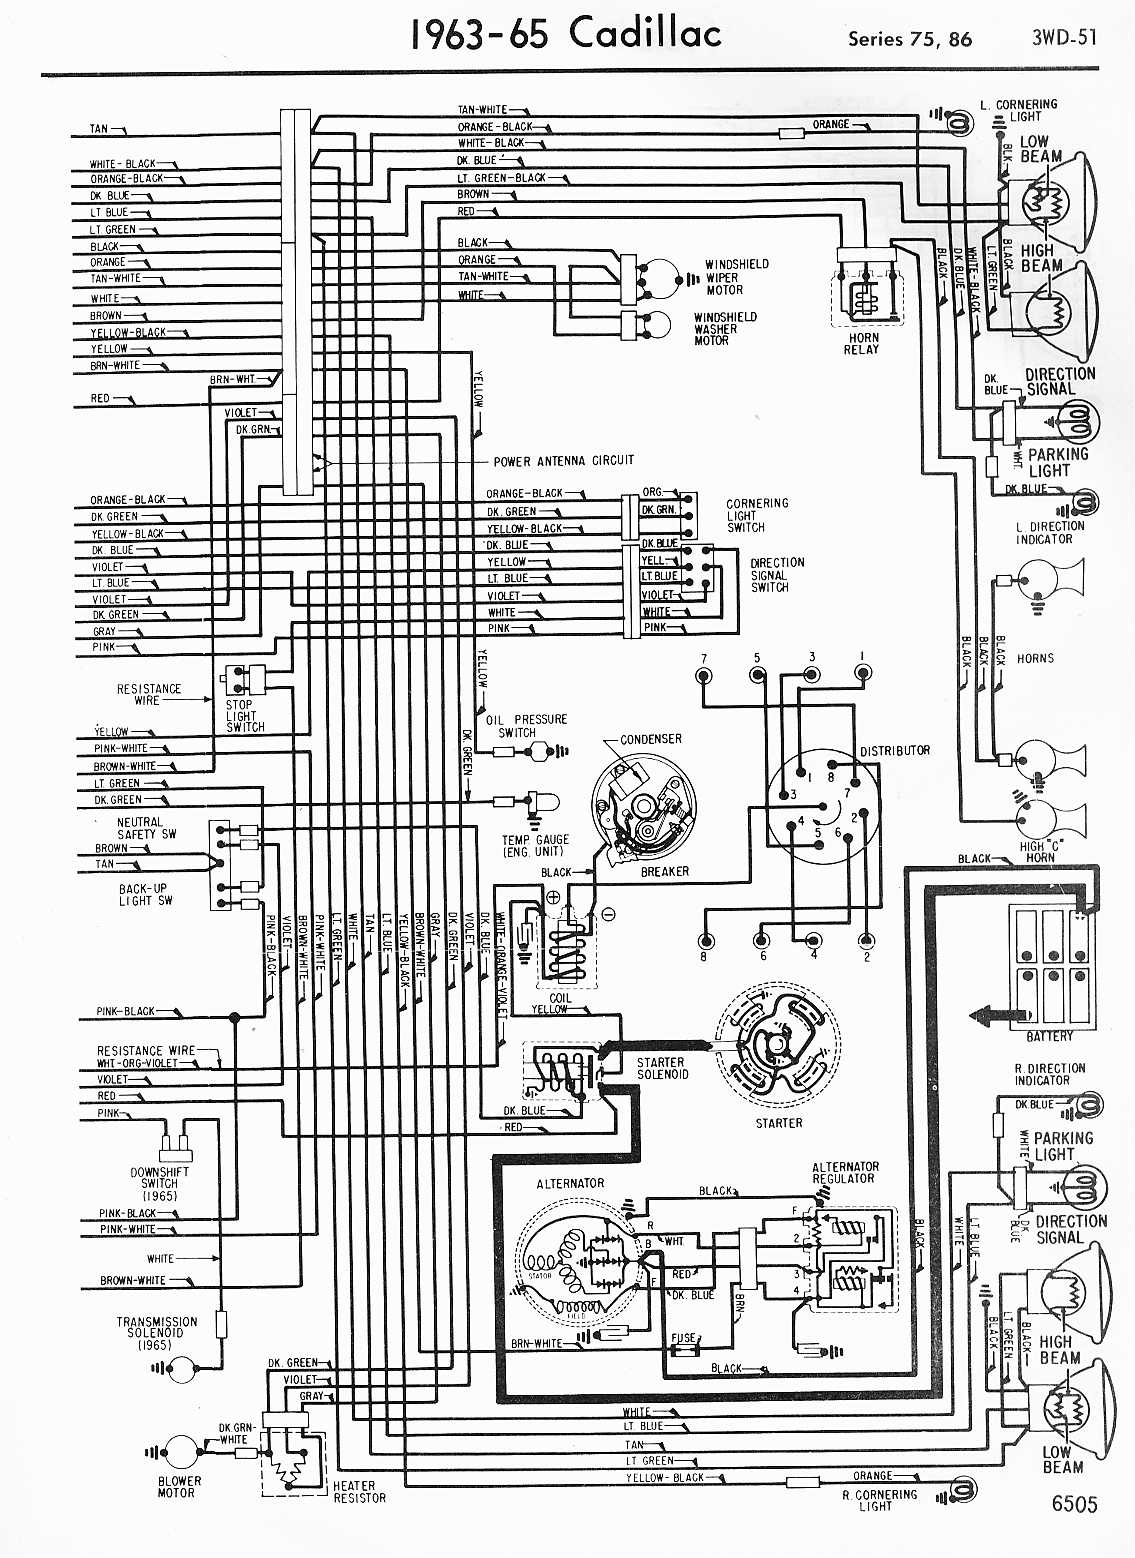 1992 Cadillac Power Antenna Relay Wiring Diagram Great Toyota Diagrams 1957 1965 Rh Oldcarmanualproject Com 2000 Mazda Millenia Stereo Camry Aftermarket